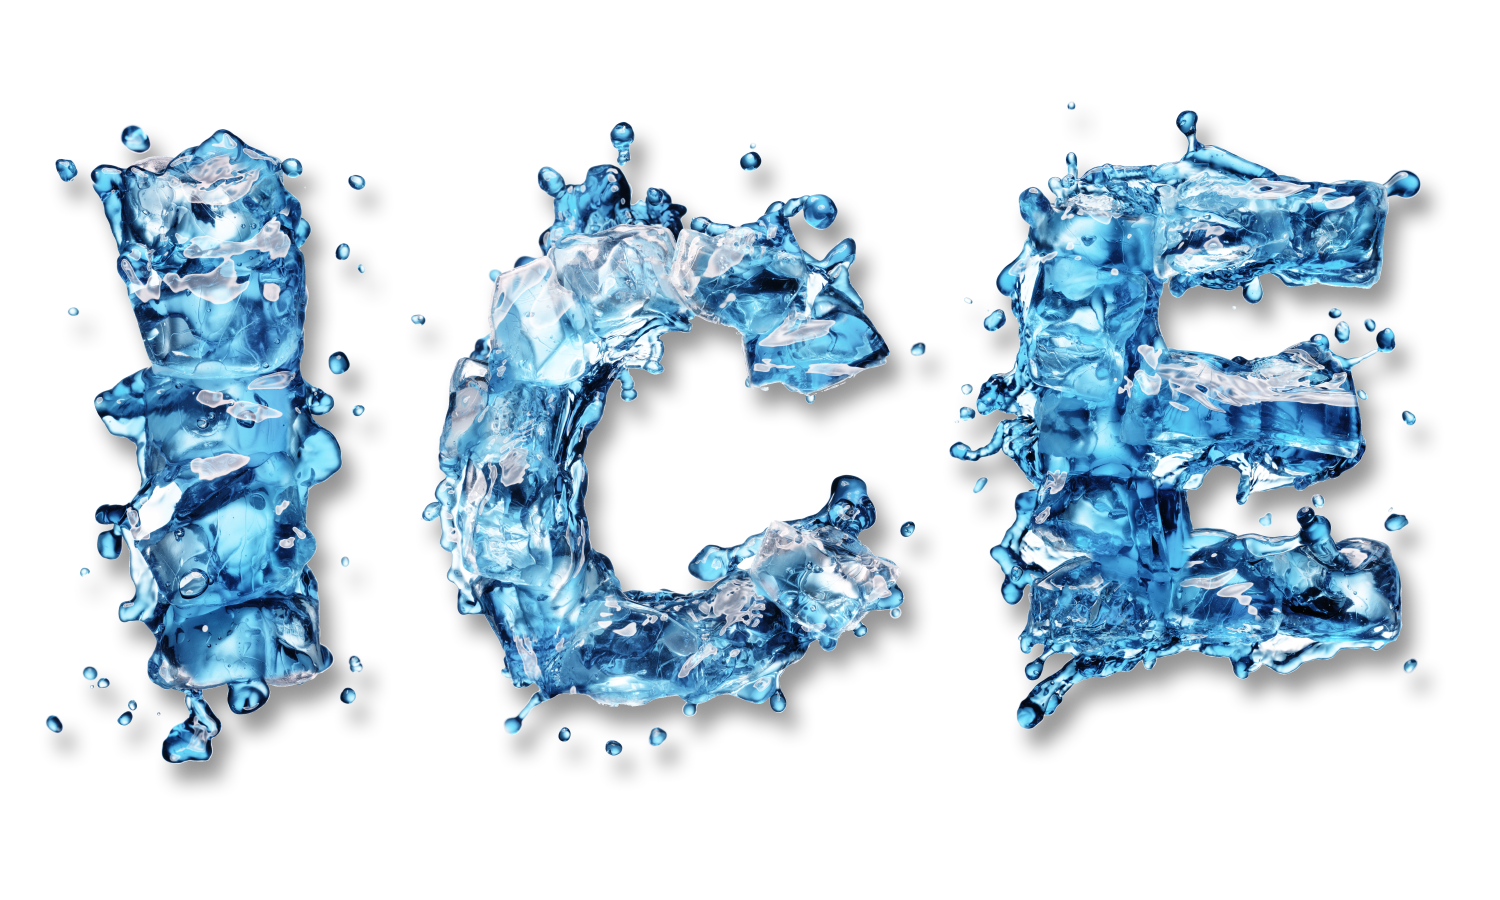 Ice png transparent images. Water clipart cold water